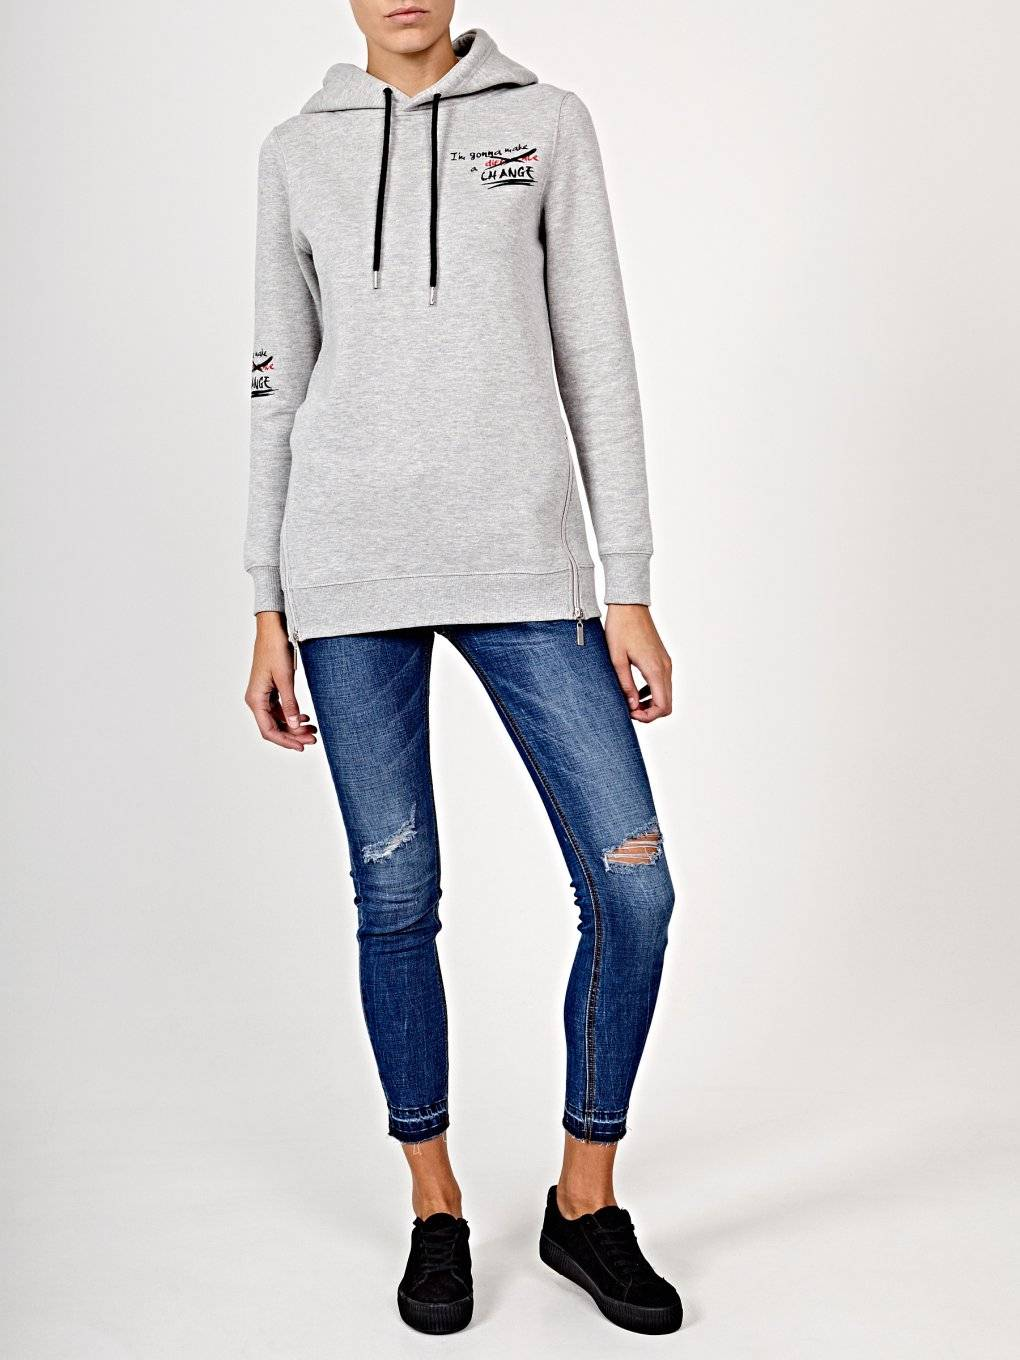 Oversized hoodie with print and zippers